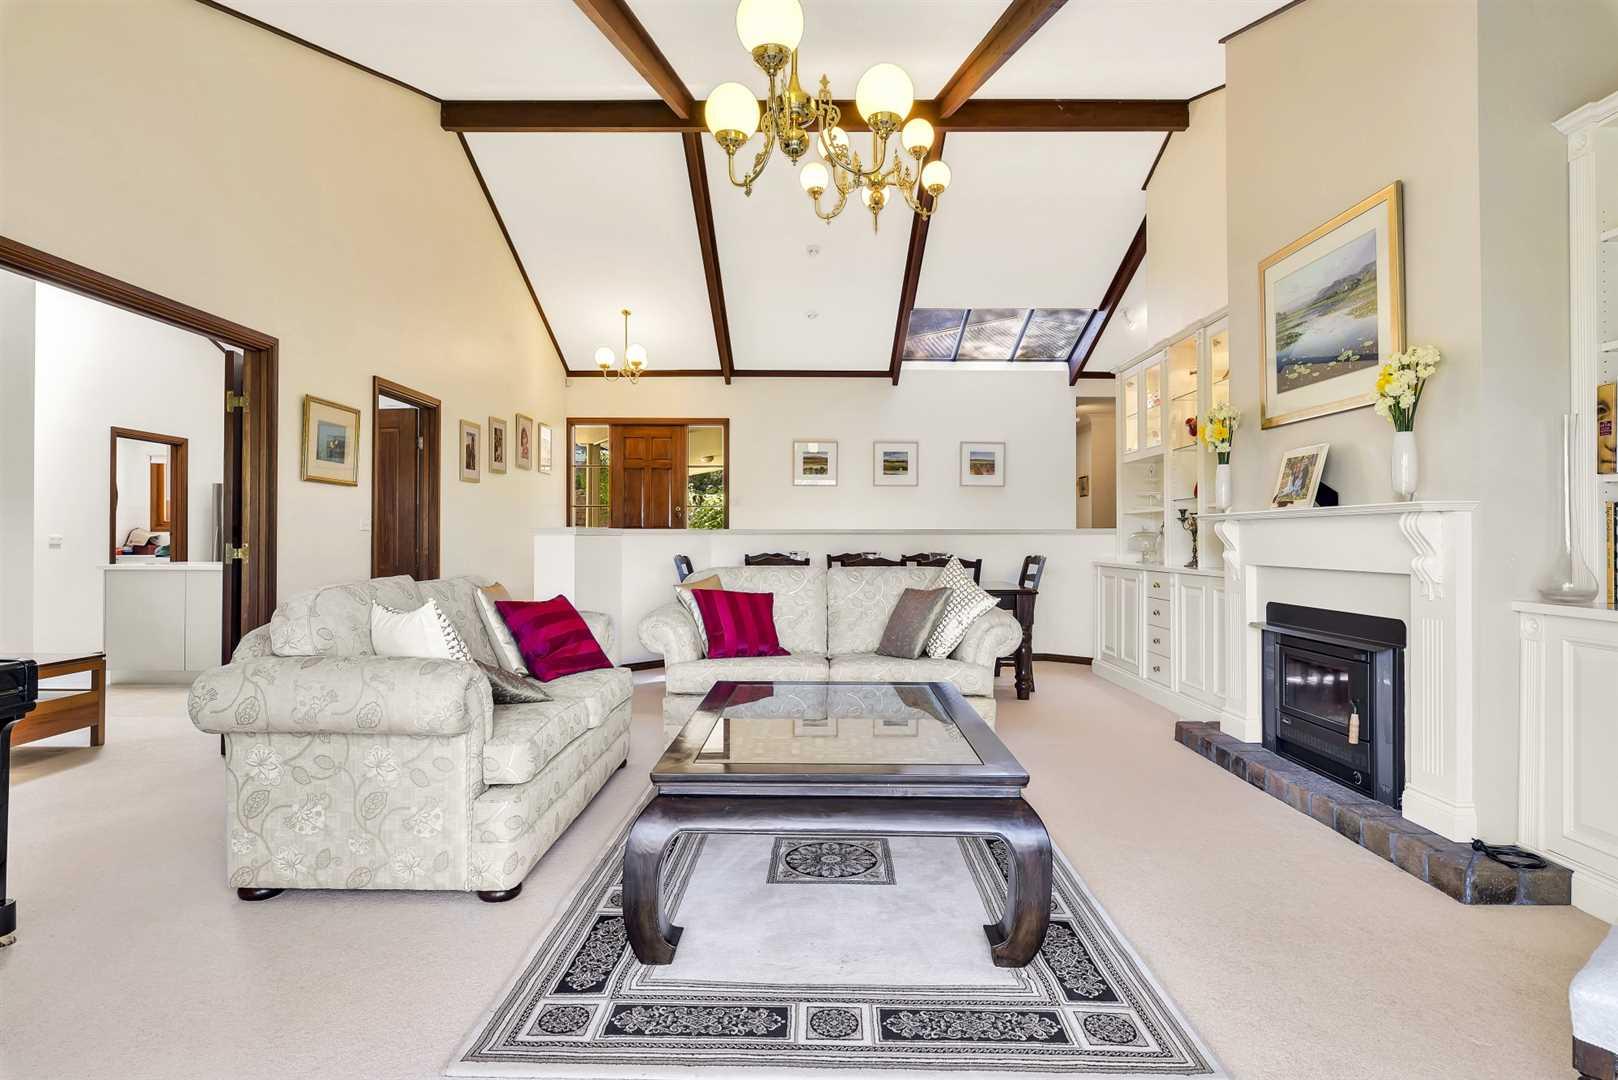 Very spacious family home in a peaceful setting